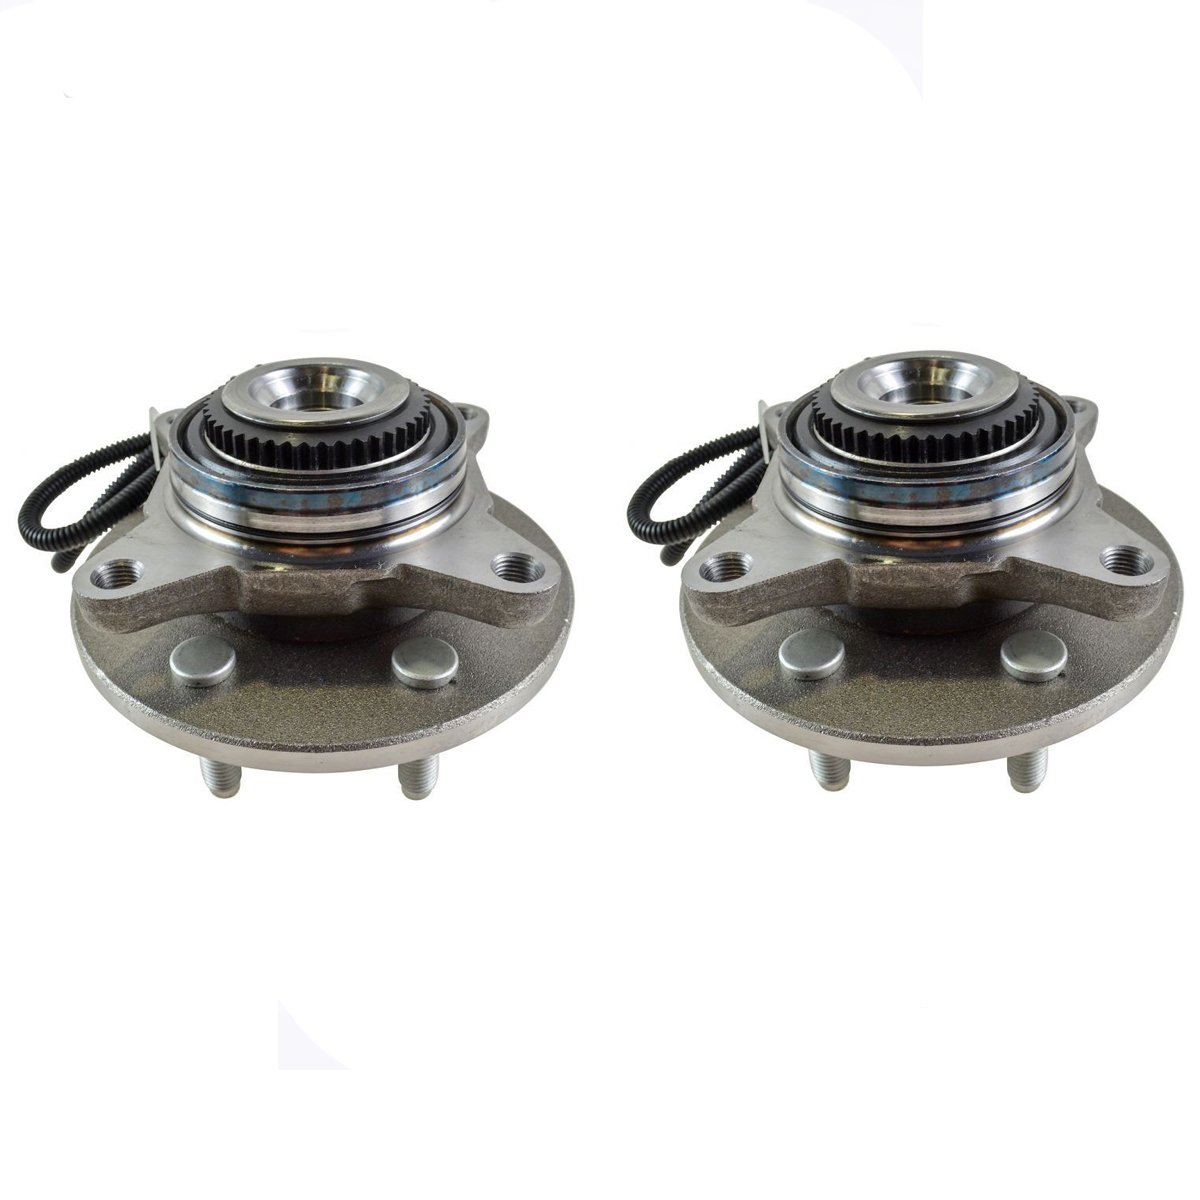 Detroit Axle - Both (2) Front Wheel Hub and Bearing Assembly Driver and Passenger Side - 4x4 w/ABS 6 Stud; From 11/29/04 - 2005-2008 Ford F-150 4x4 - [2006-2008 Lincoln Mark LT]